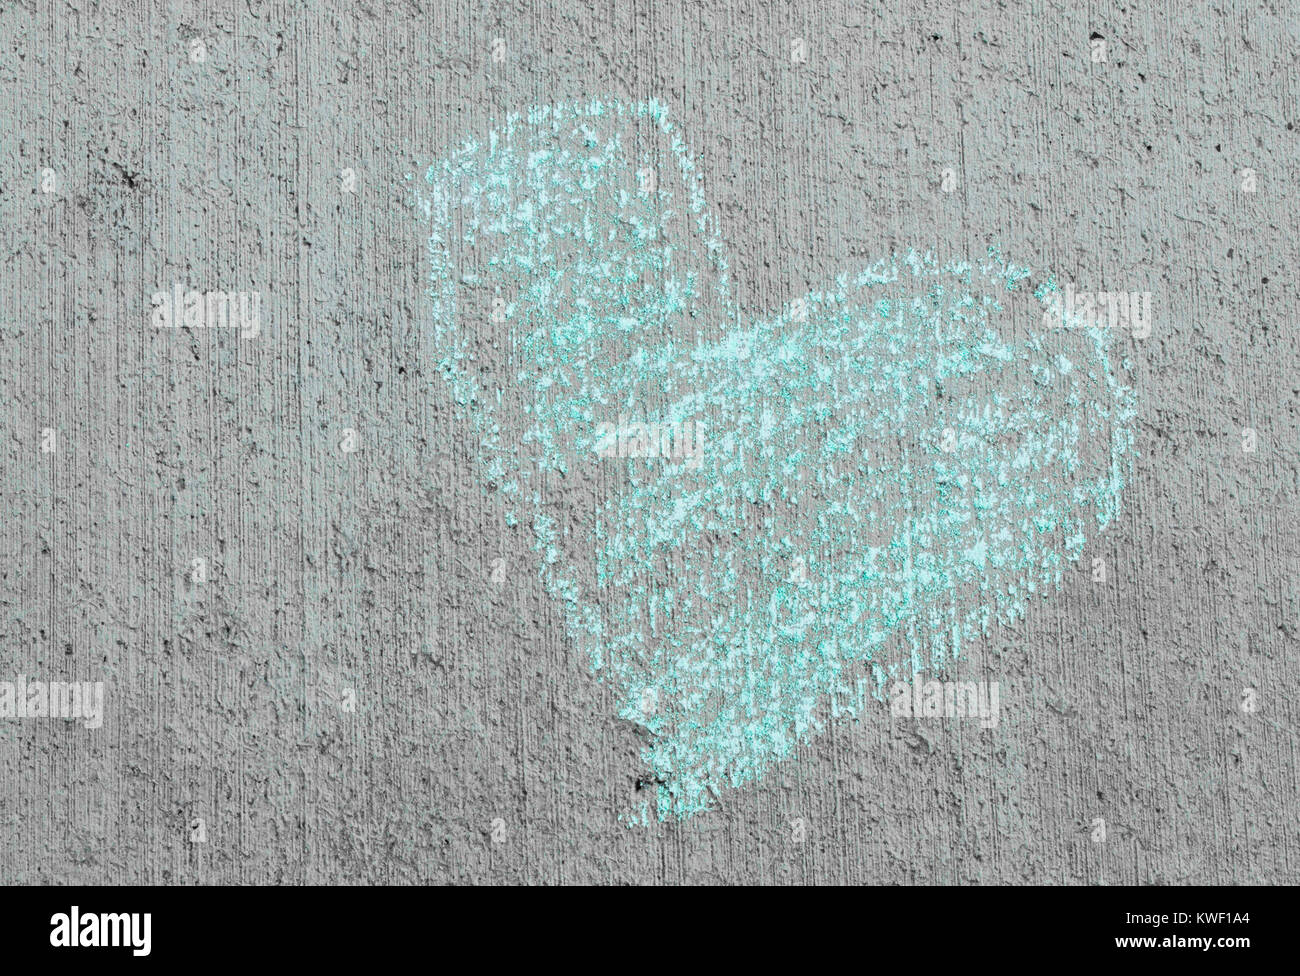 chalk drawing of a turquoise heart on a cement sidewalk - Stock Image